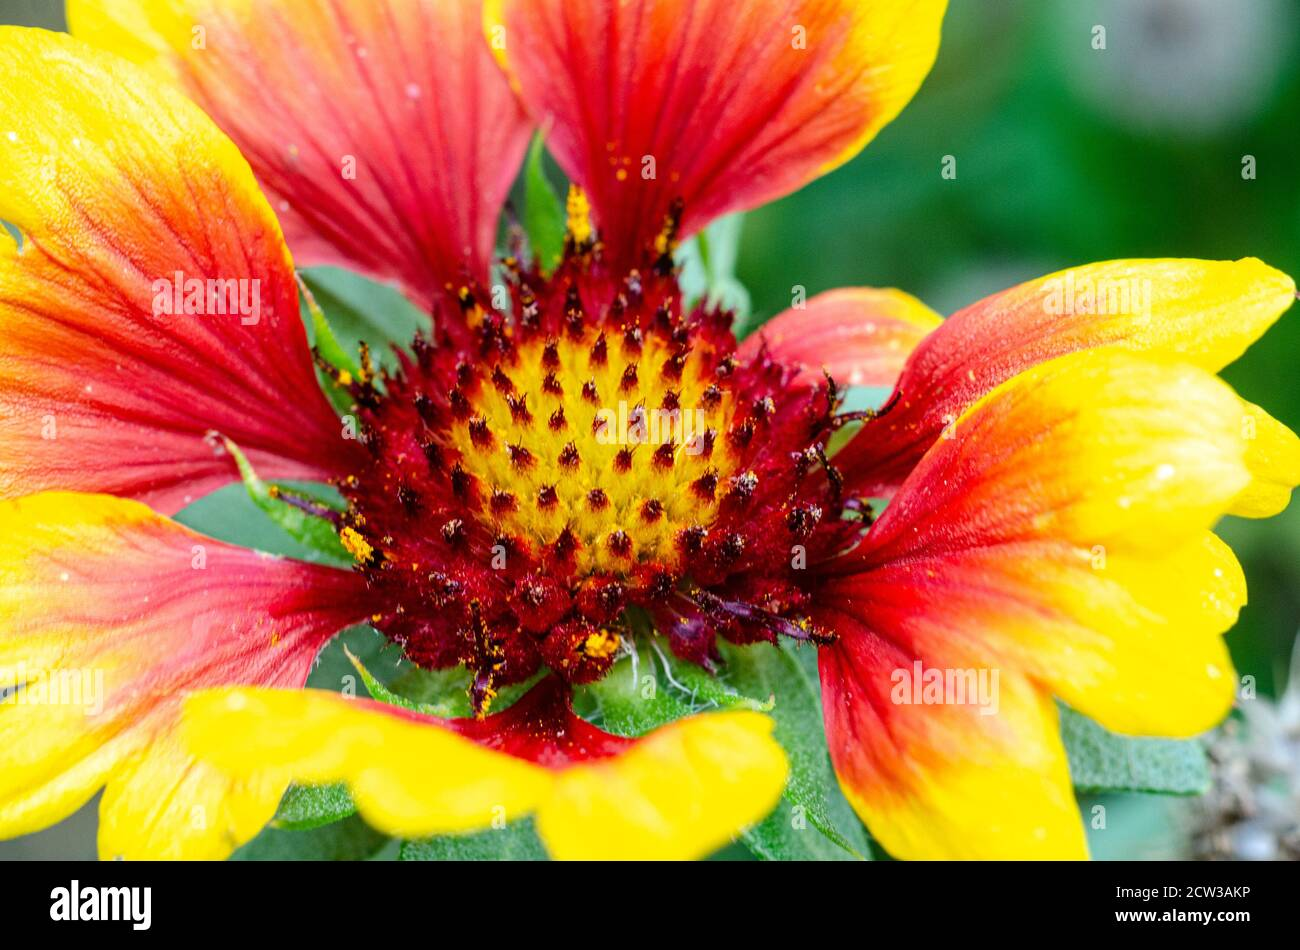 close-up-view-of-a-gaillardia-flower-with-vibrant-red-and-yellow-colours-2CW3AKP.jpg